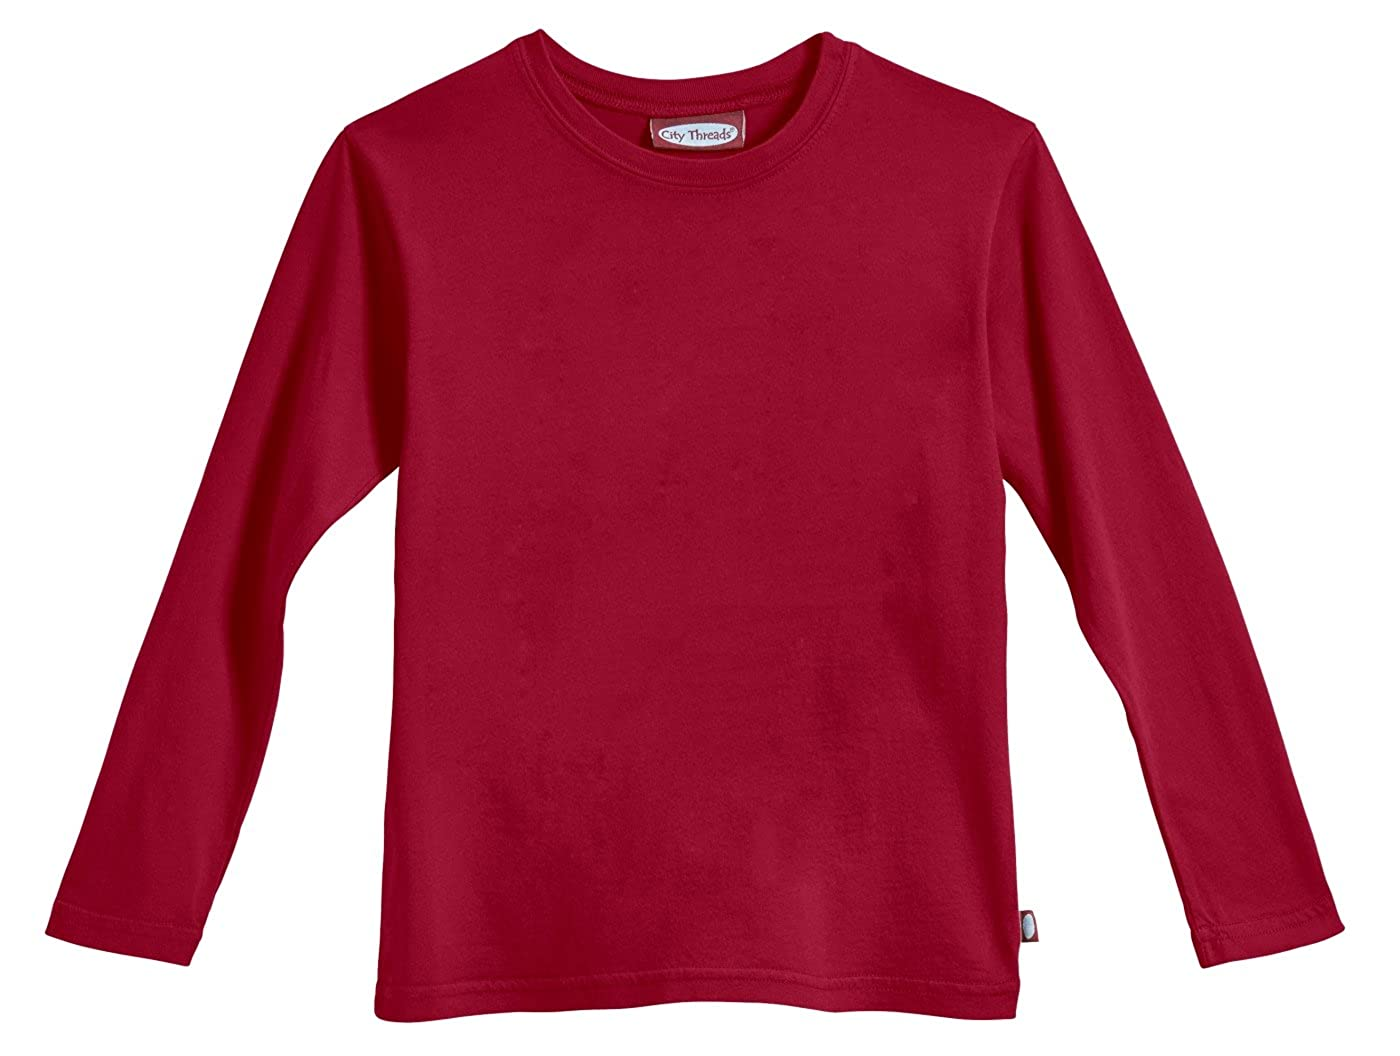 City Threads Boys' Long Sleeve Solid Tee Tshirt in 100% Soft Cotton Made in USA CT-SOLIDTEE-LSB